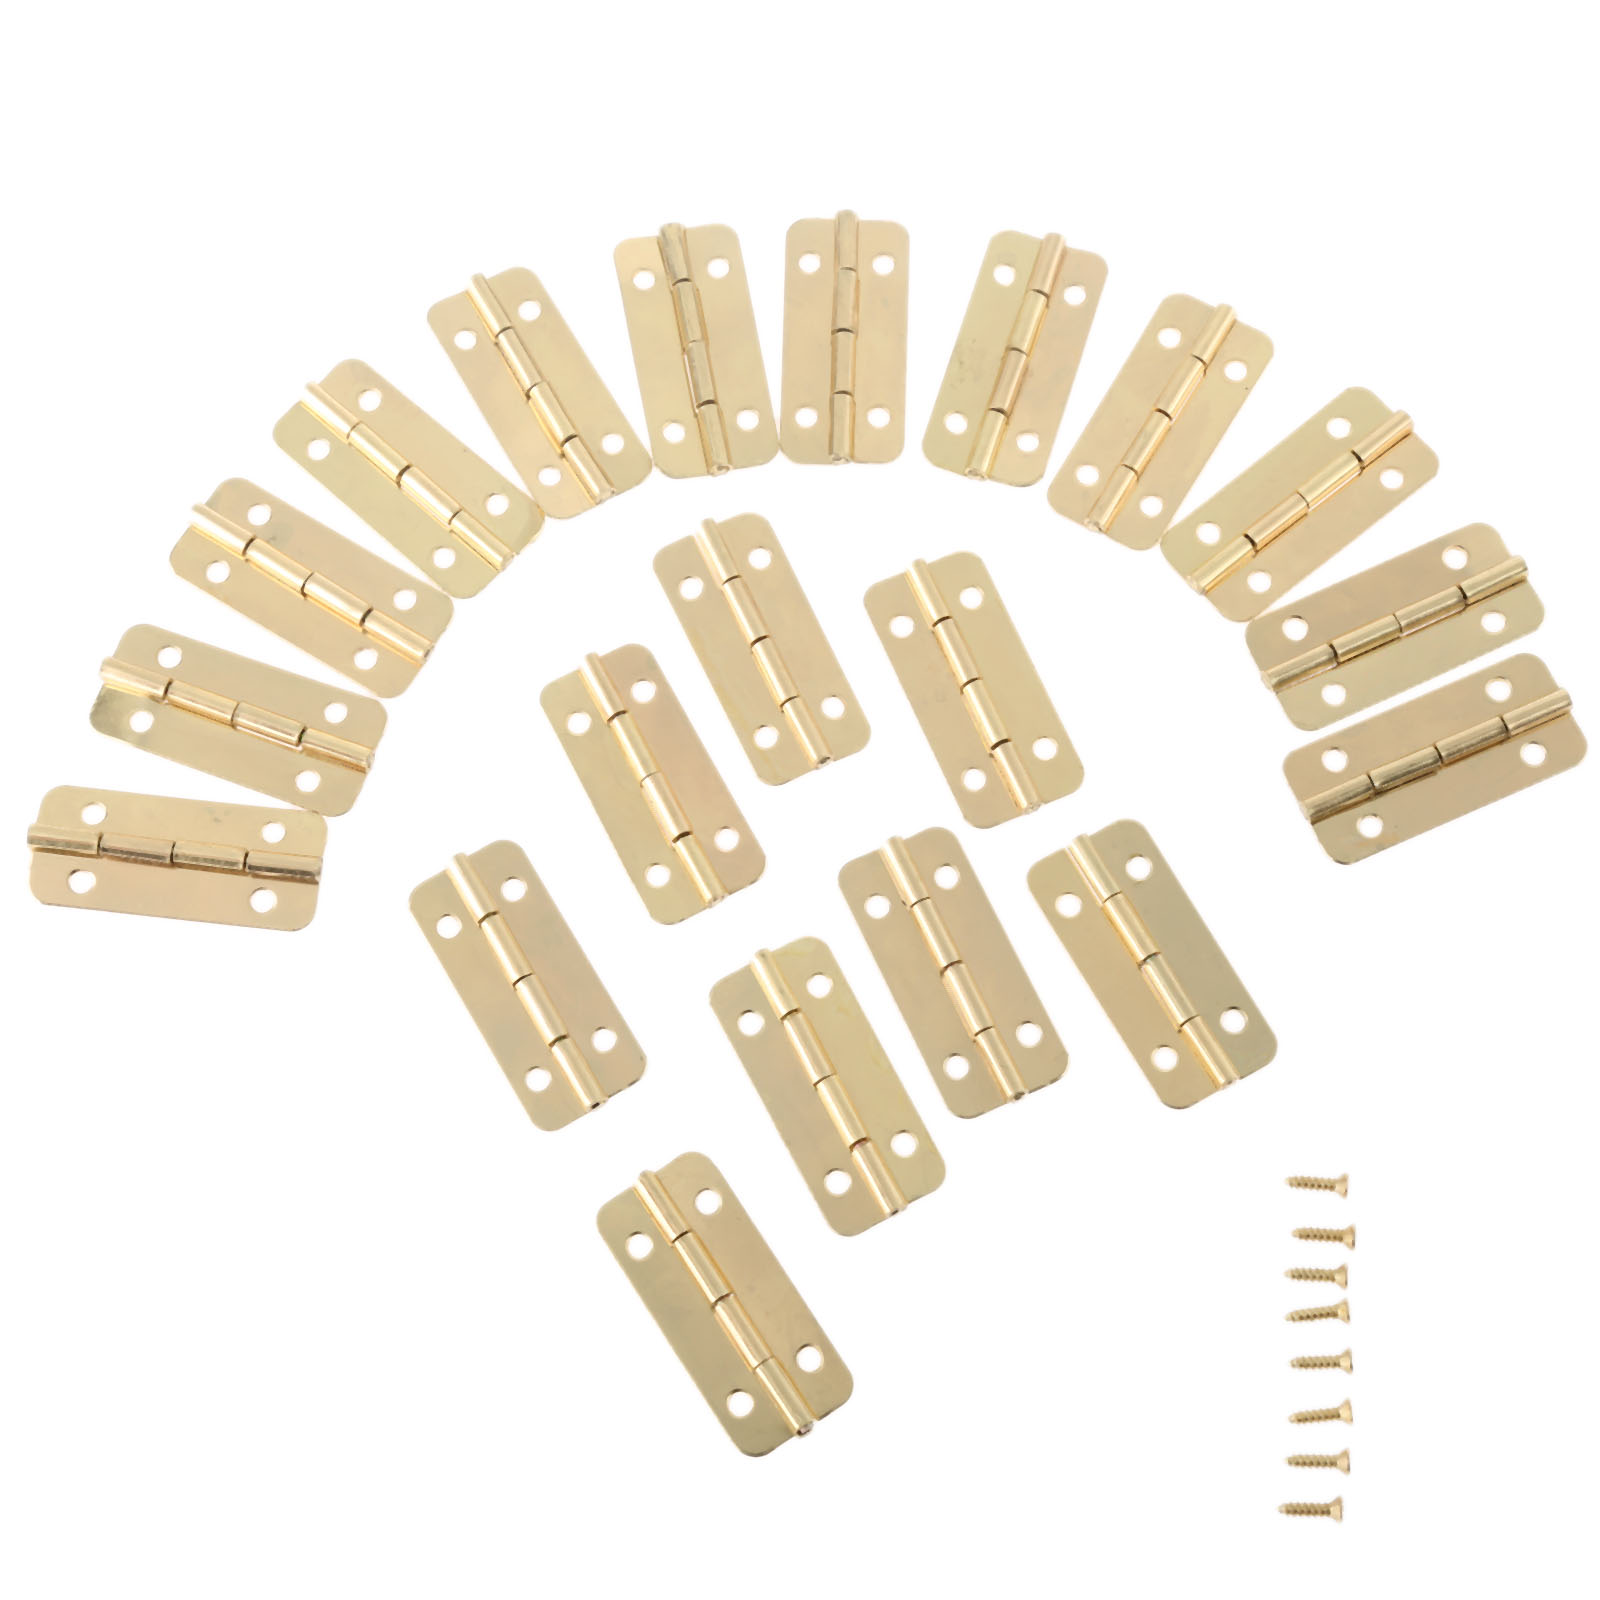 20Pcs Gold Furniture Hinges for Box Door Butt Decorative Small Hinge for Cabinet Drawer Furniture Hardware with Screw 37mmx17mm 2pcs 90 degree concealed hinges cabinet cupboard furniture hinges bridge shaped door hinge with screws diy hardware tools mayitr